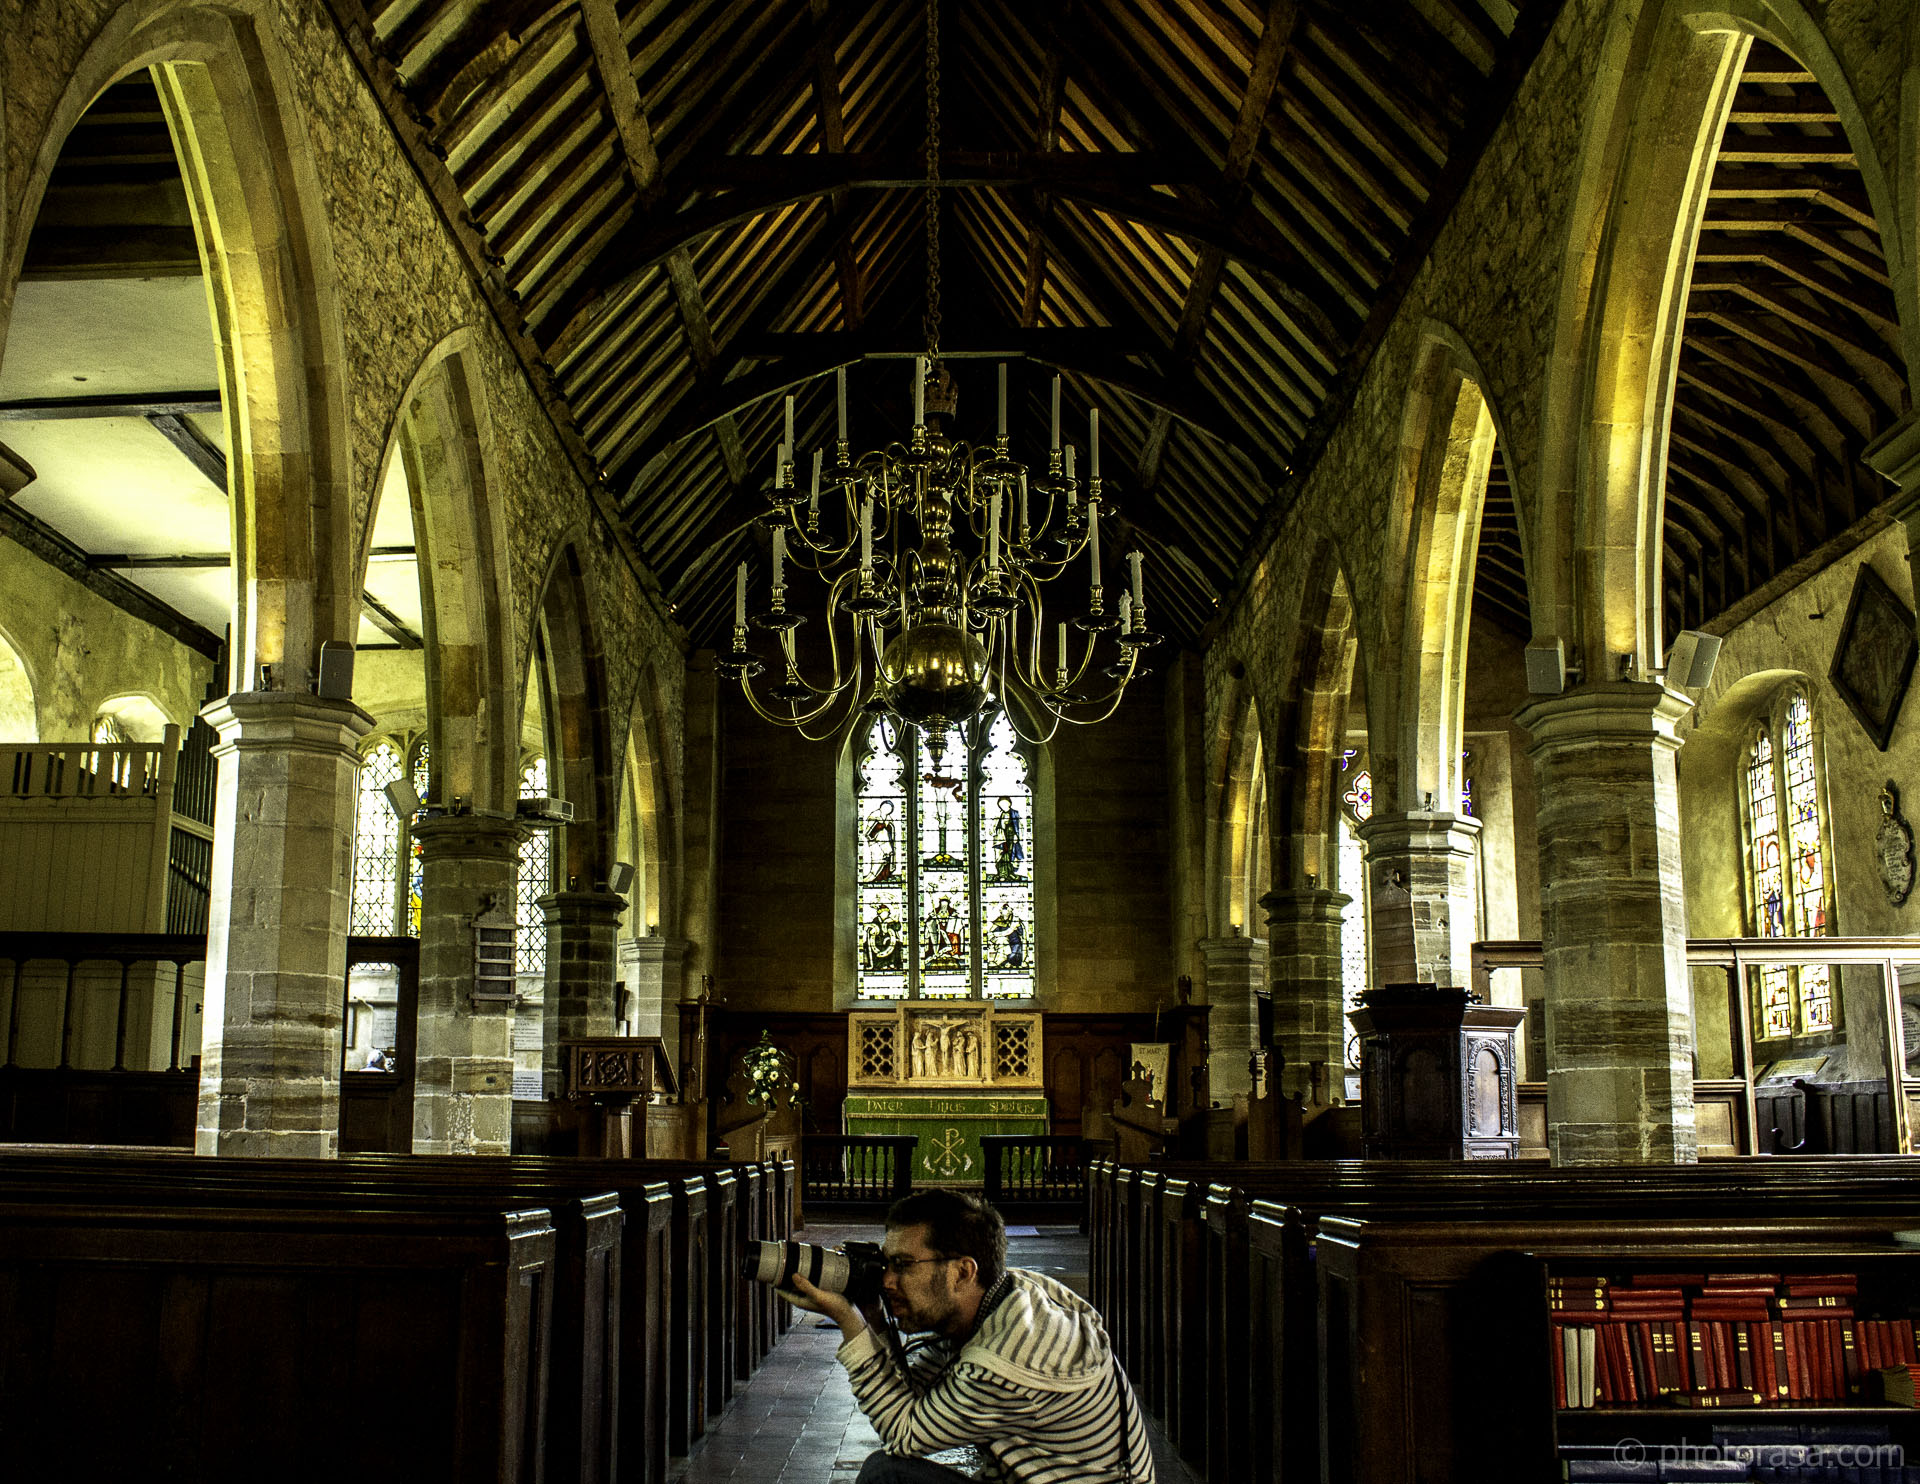 https://photorasa.com/st-marys-church-in-chiddingstone/church-wide-angle-view/